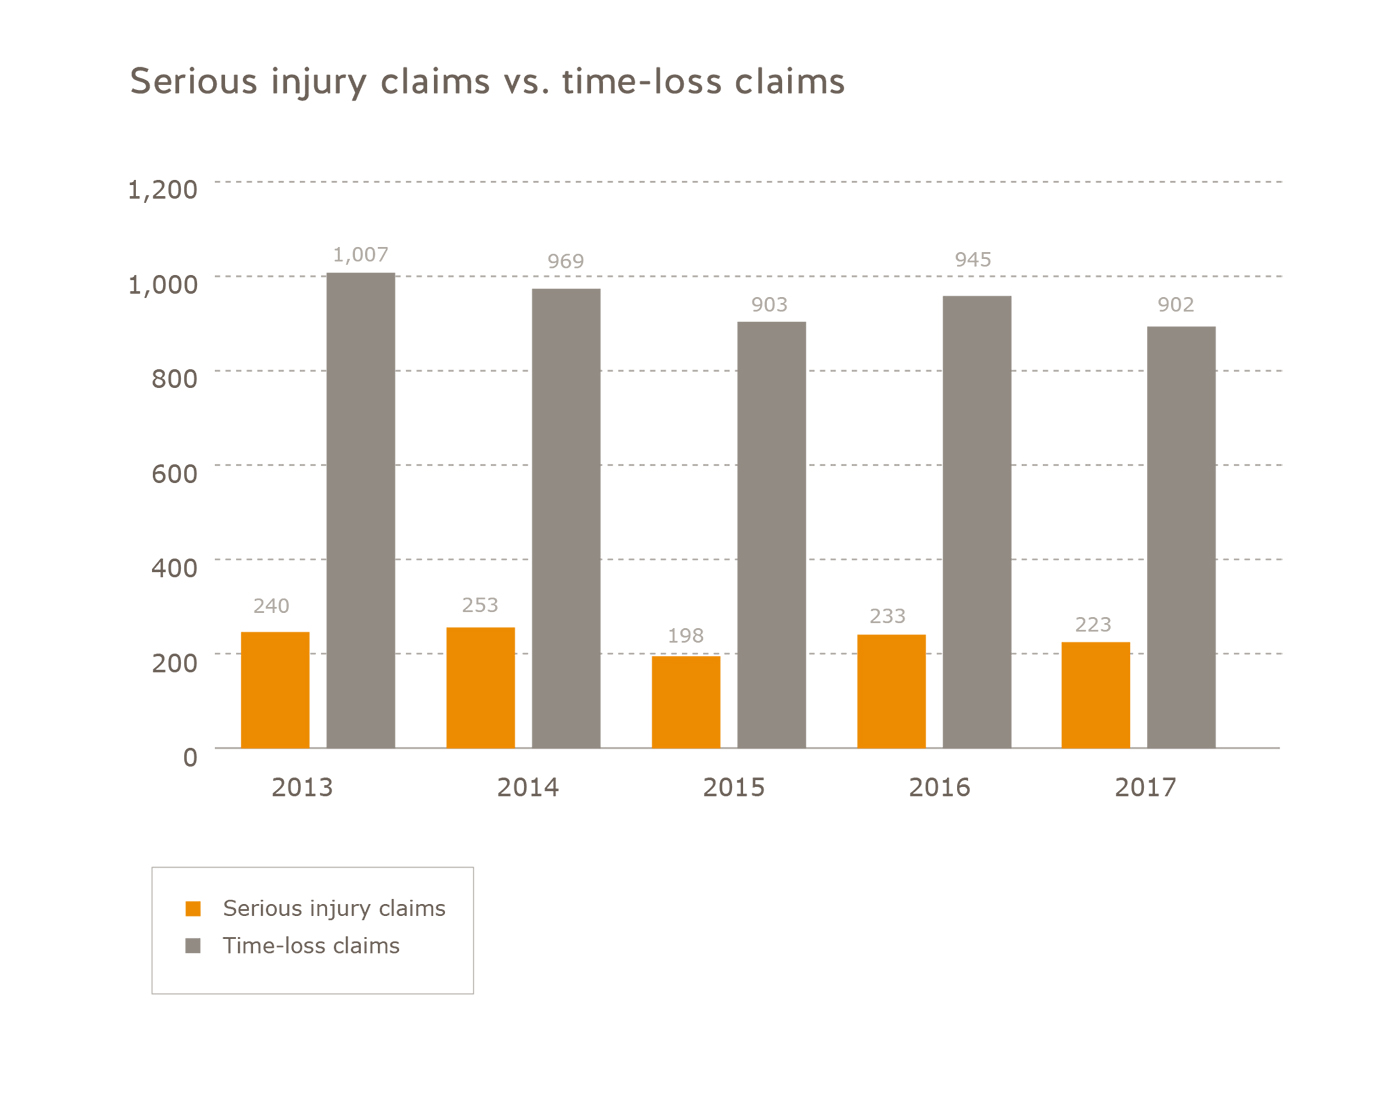 Number of serious injury claims vs. number of time-loss claims forestry industry 2013 to 2017. Number of serious injury claims: 2013 = 240, 2014 = 253, 2015 = 198, 2016 = 233, 2017 = 223. Number of time-loss claims: 2013 = 1,007, 2014 = 969, 2015 = 903, 2016 = 945, 2017 = 902.